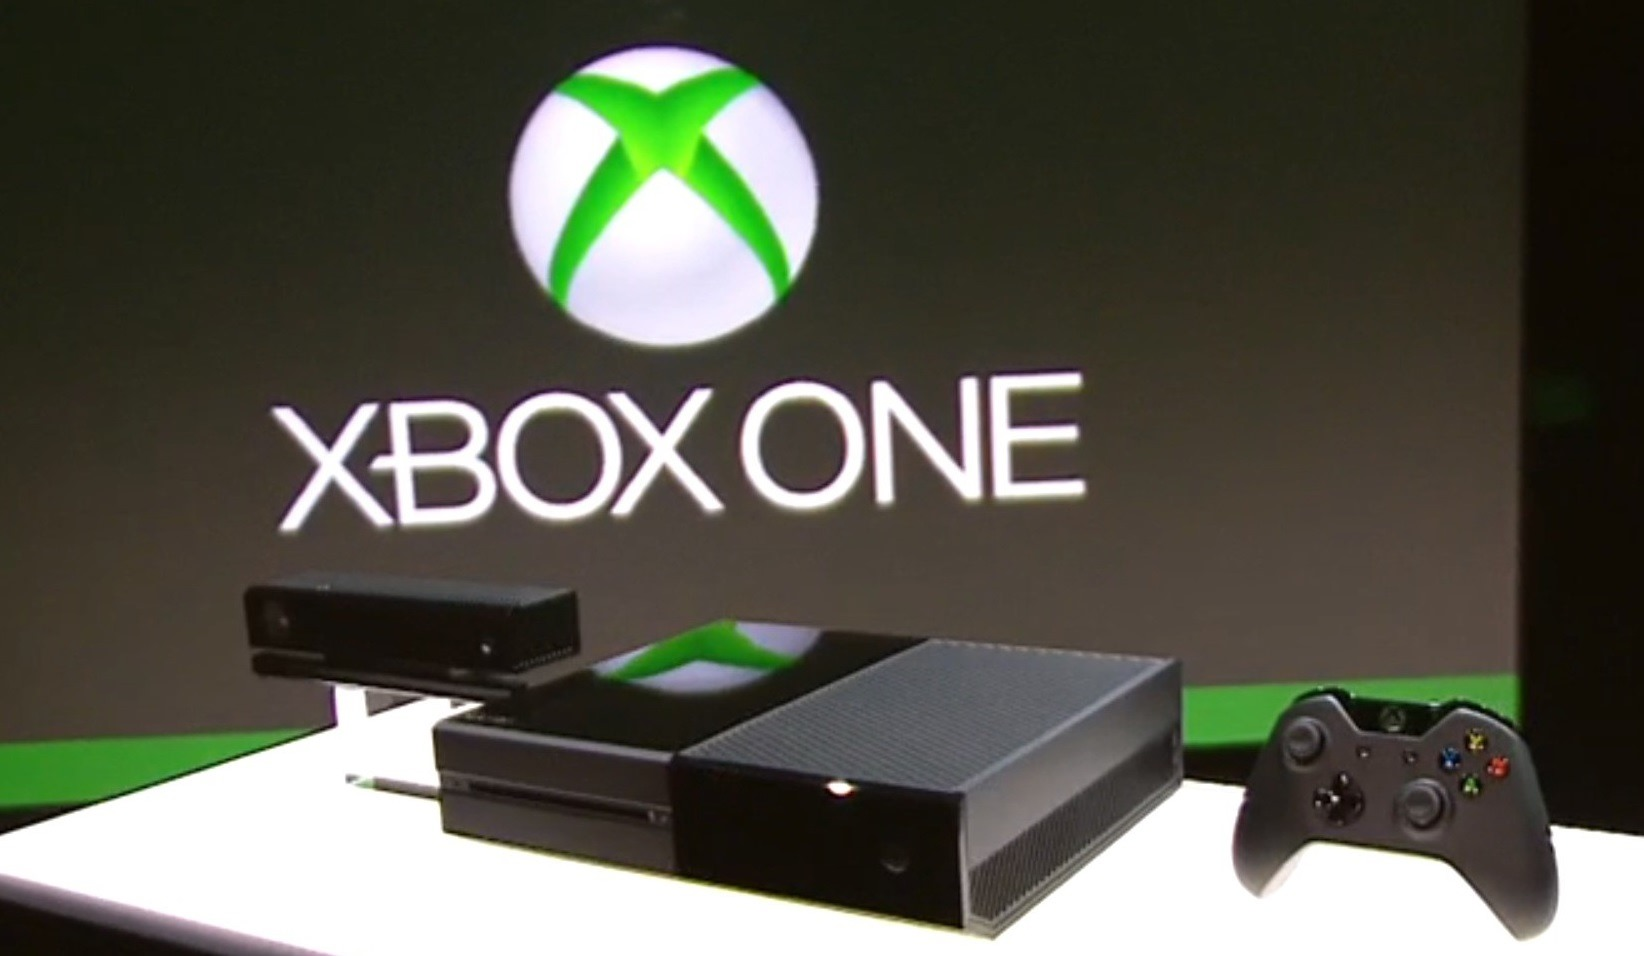 Xbox One unboxing video leaked